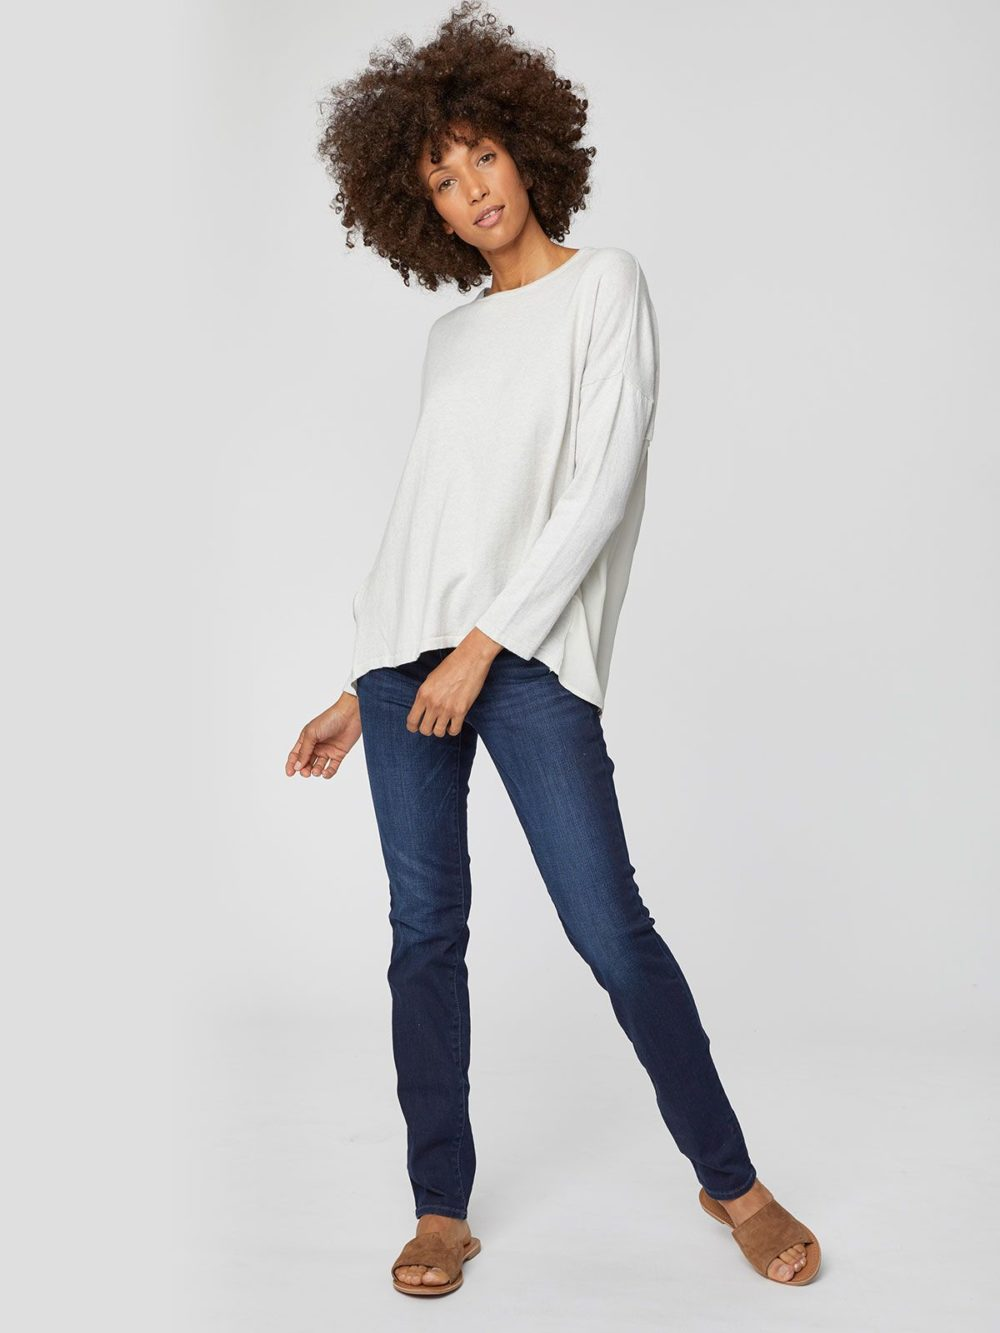 Isobel Jumper Thought Clothing Katie Kerr Women's Clothing